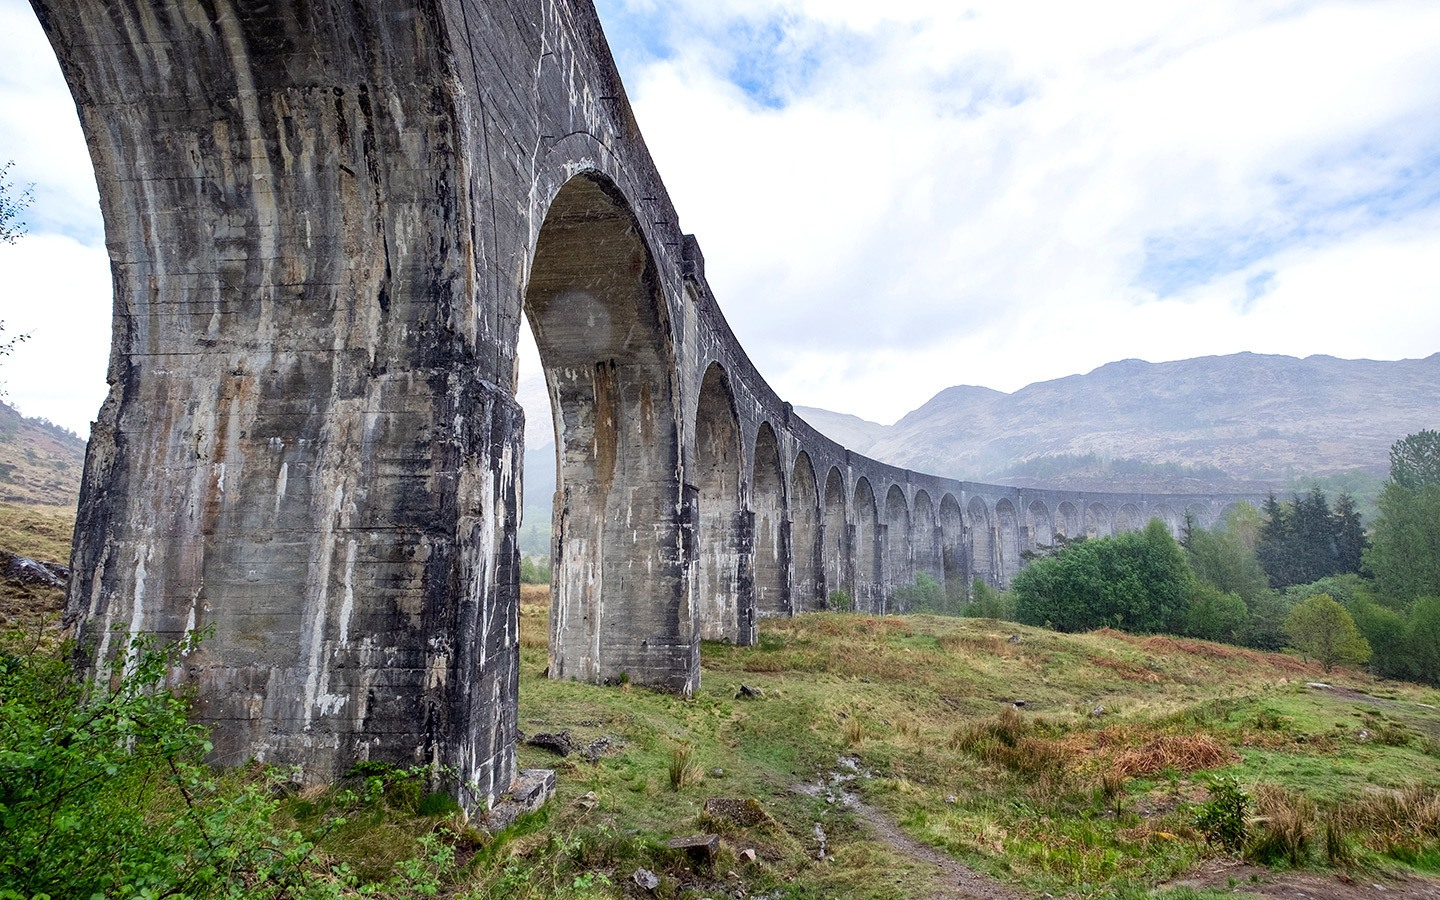 The Jacobite steam train crosses the Glenfinnan Viaduct in Scotland